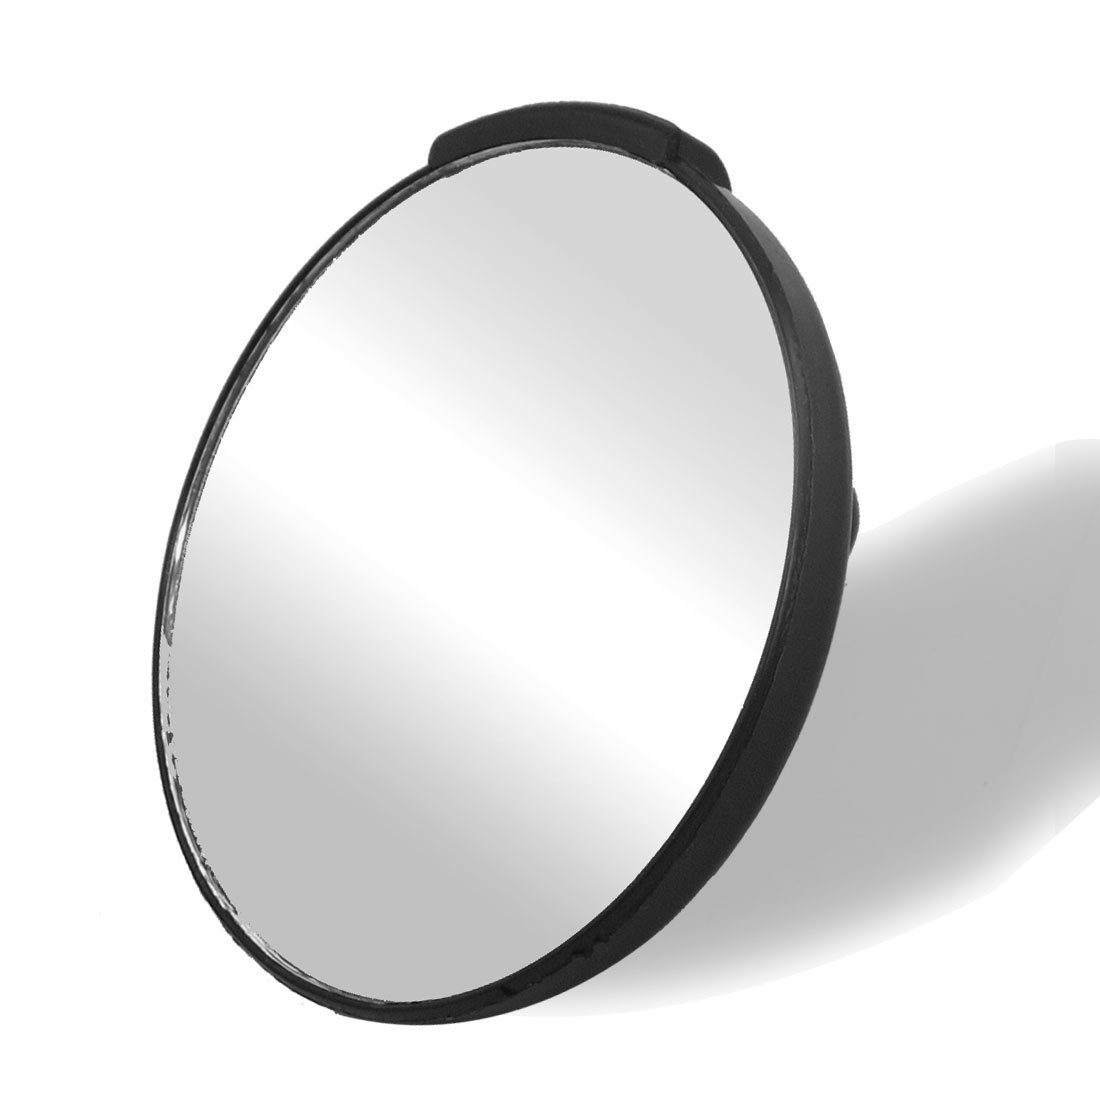 Auto Car Black Stick-on Wide Angle Round Rearview Blind Spot Mirror 3.15''